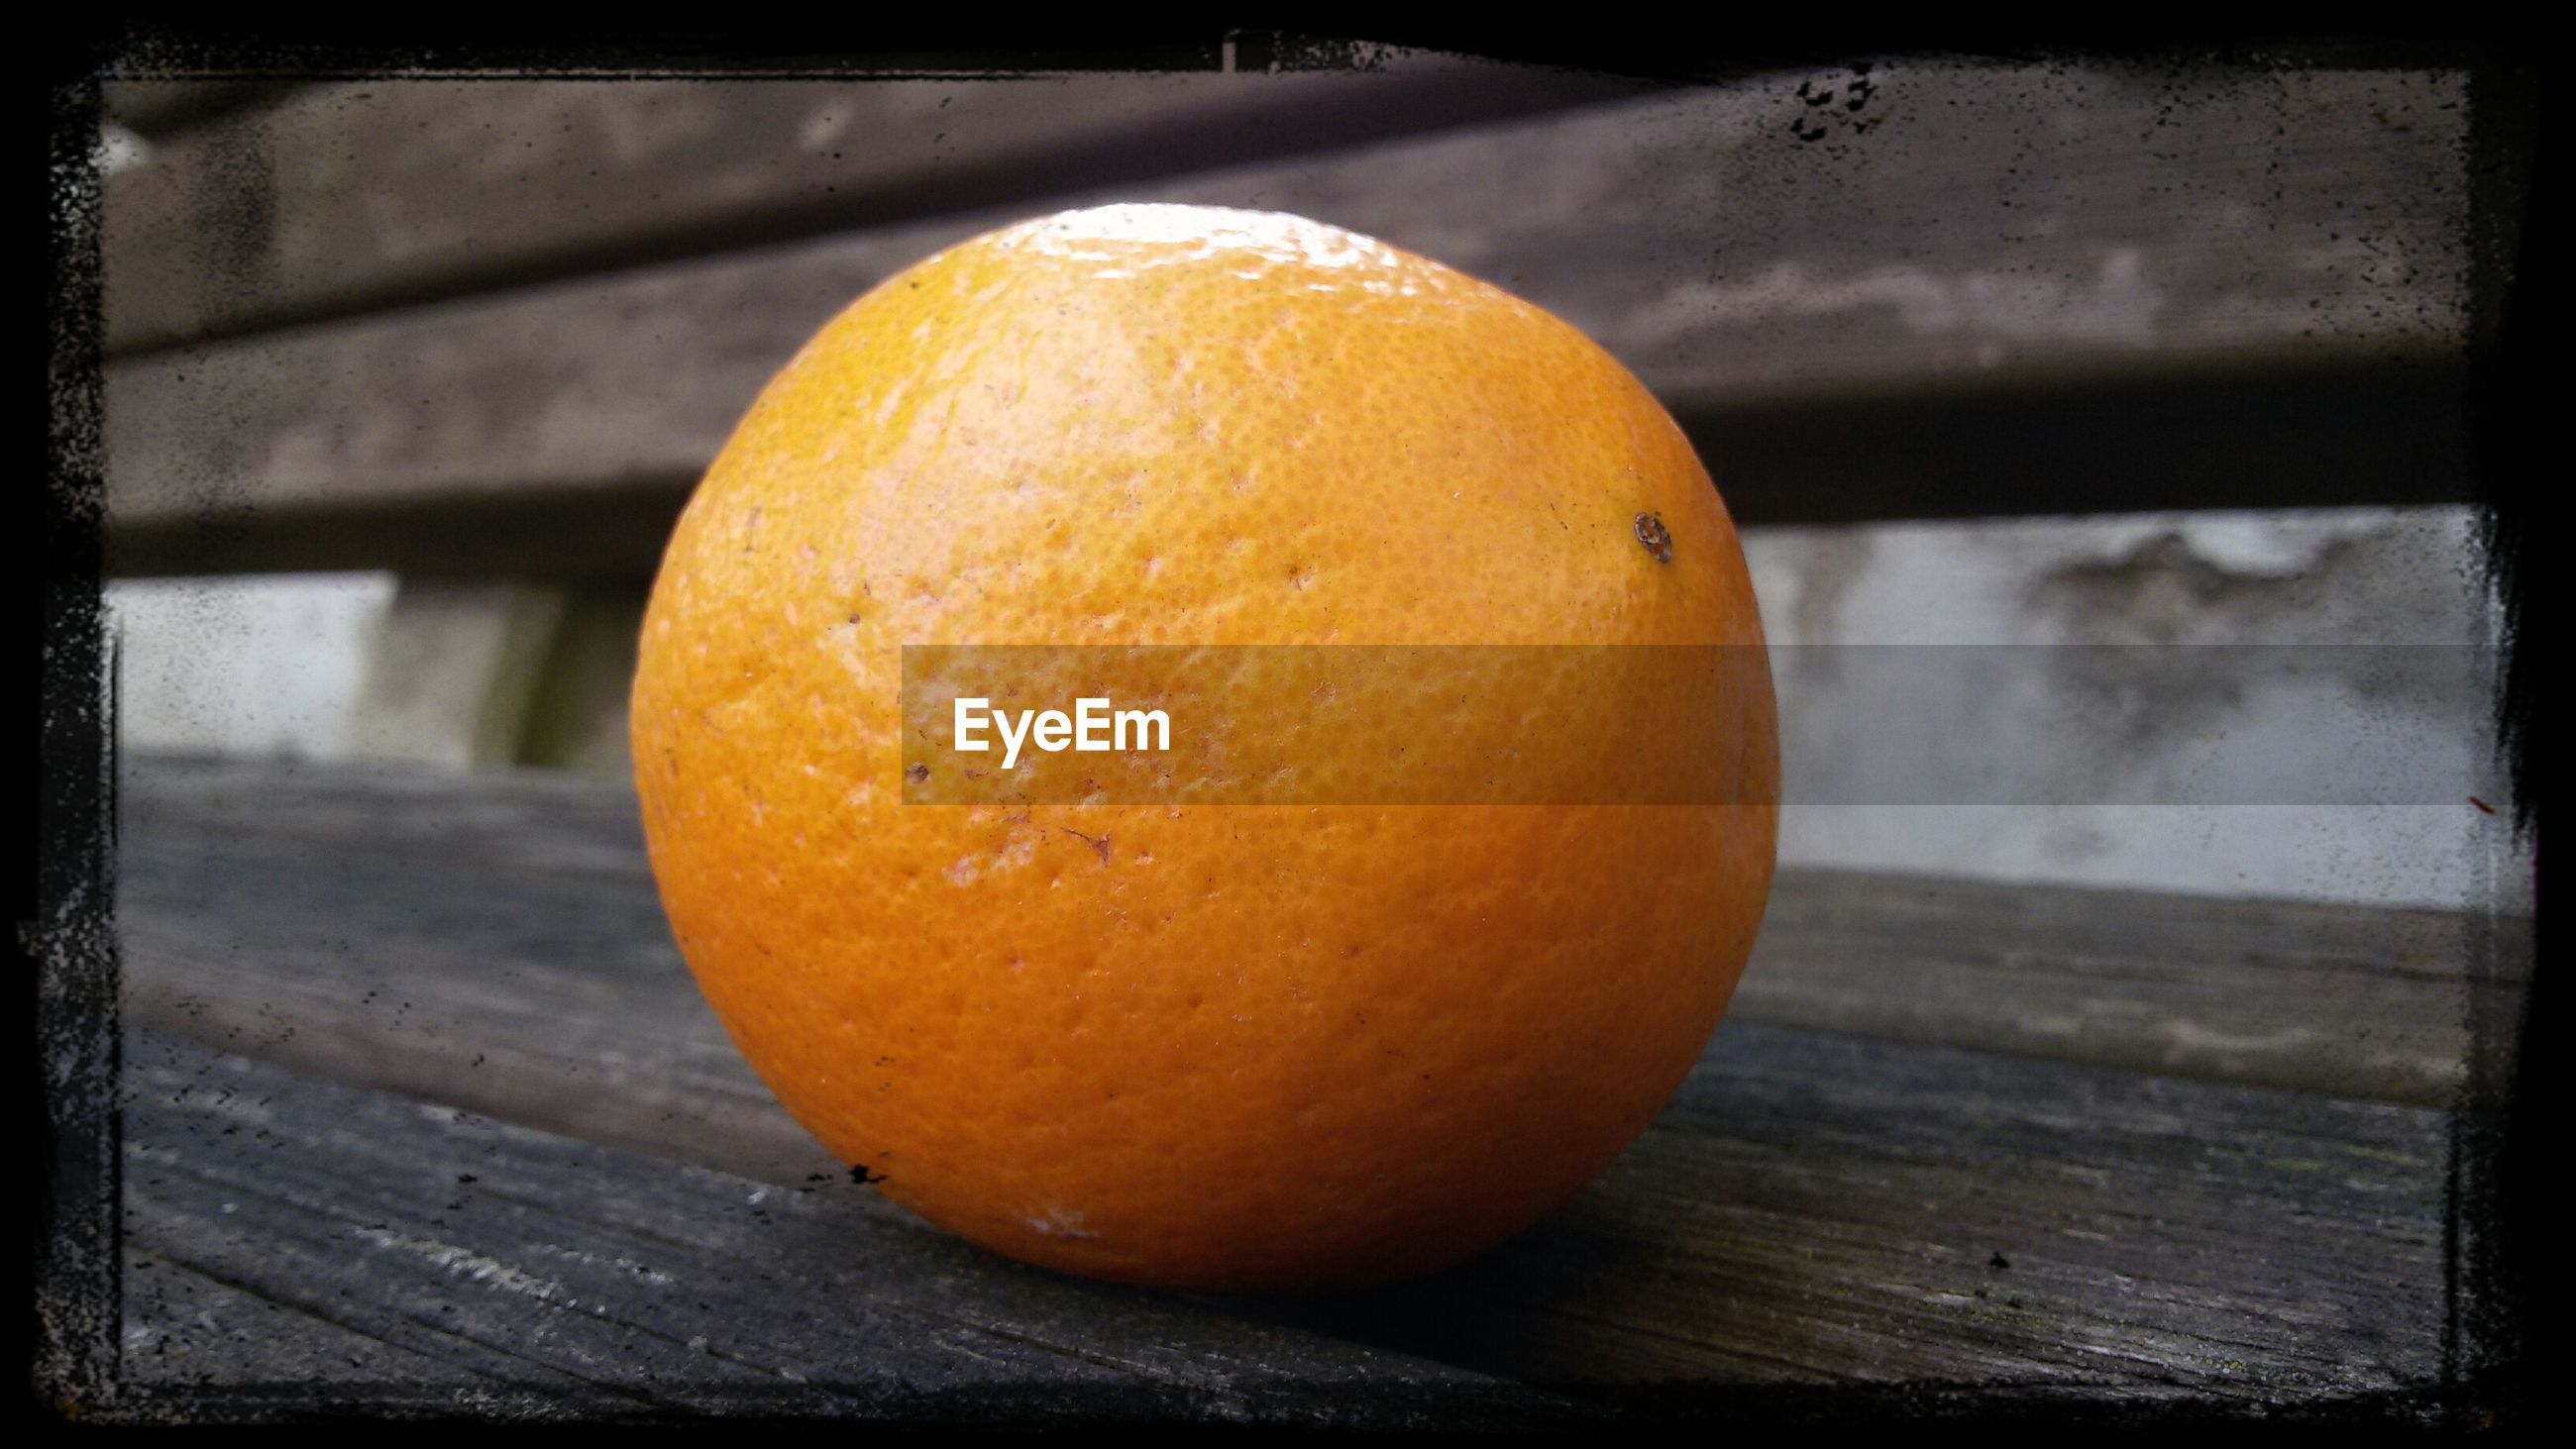 food and drink, fruit, food, healthy eating, freshness, close-up, still life, orange color, indoors, table, orange - fruit, wood - material, yellow, citrus fruit, focus on foreground, transfer print, auto post production filter, wooden, pumpkin, ripe